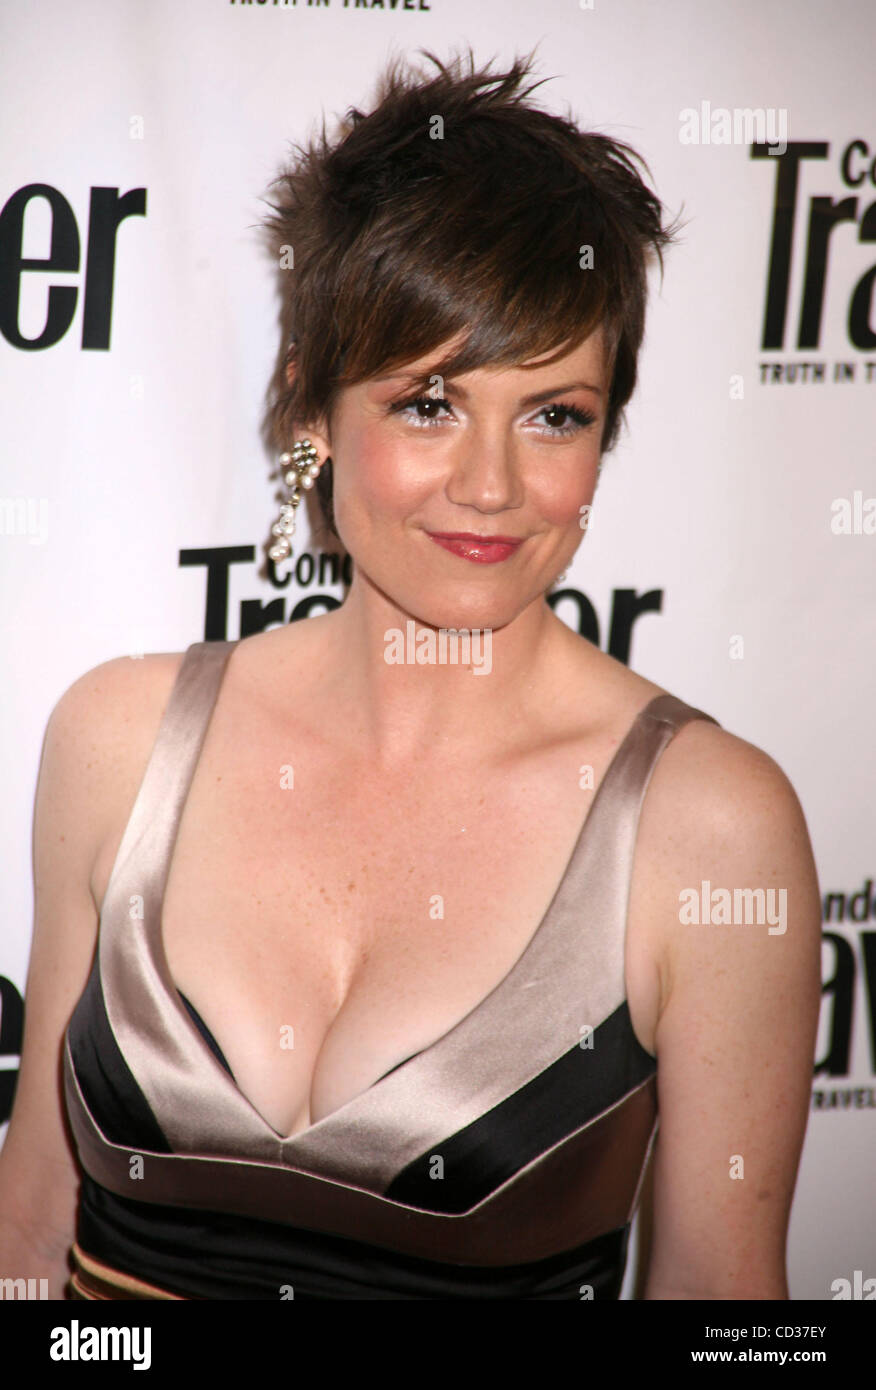 zoe mclellan hot